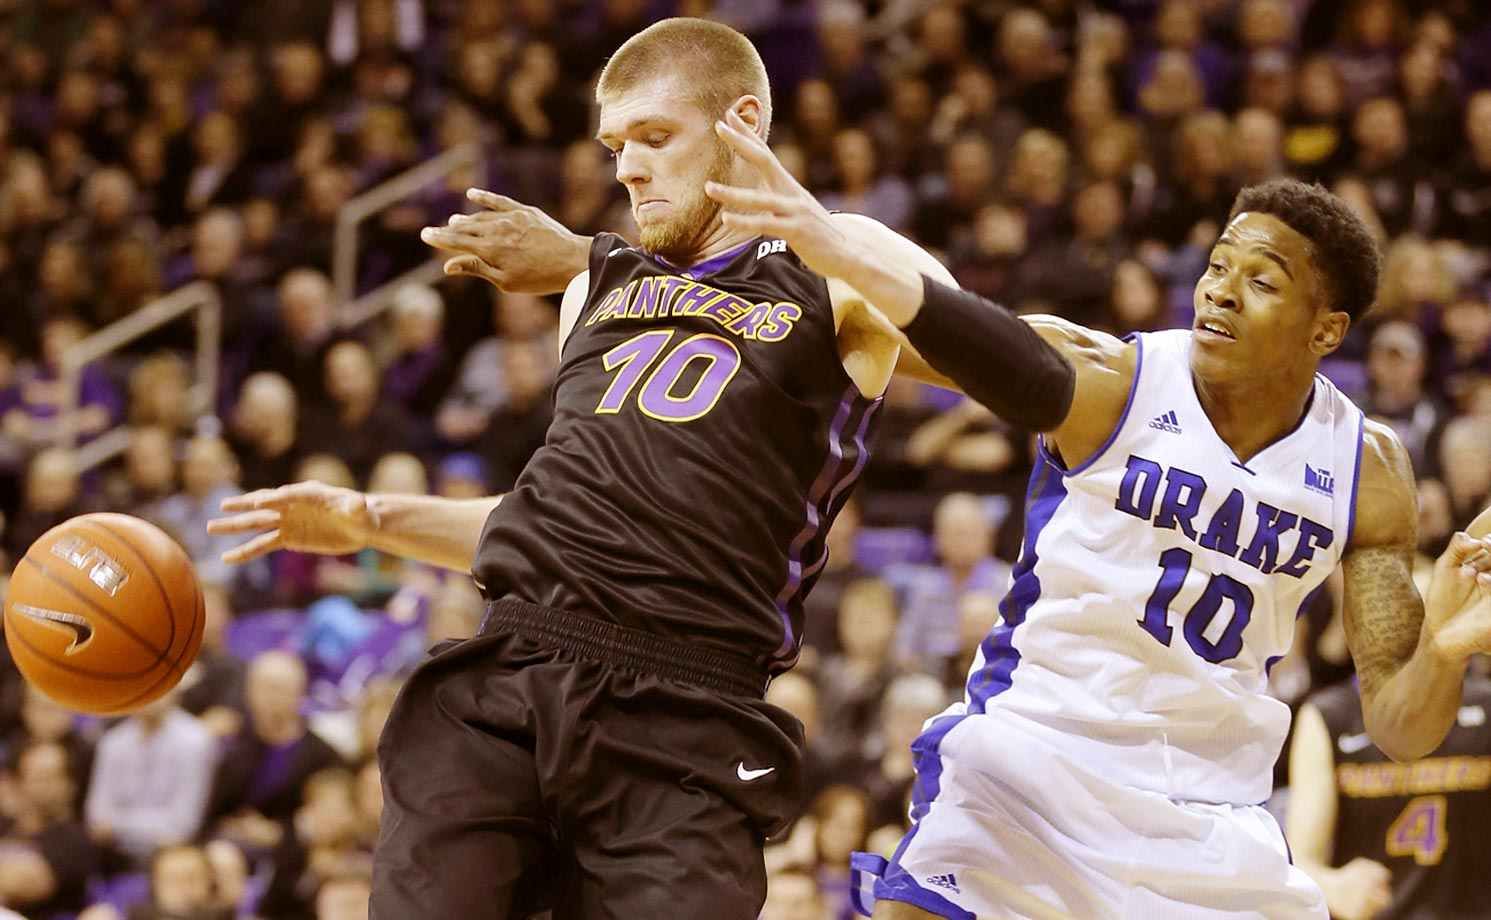 Northern Iowa forward Seth Tuttle fights for a rebound with Drake forward Trevor Berkeley.